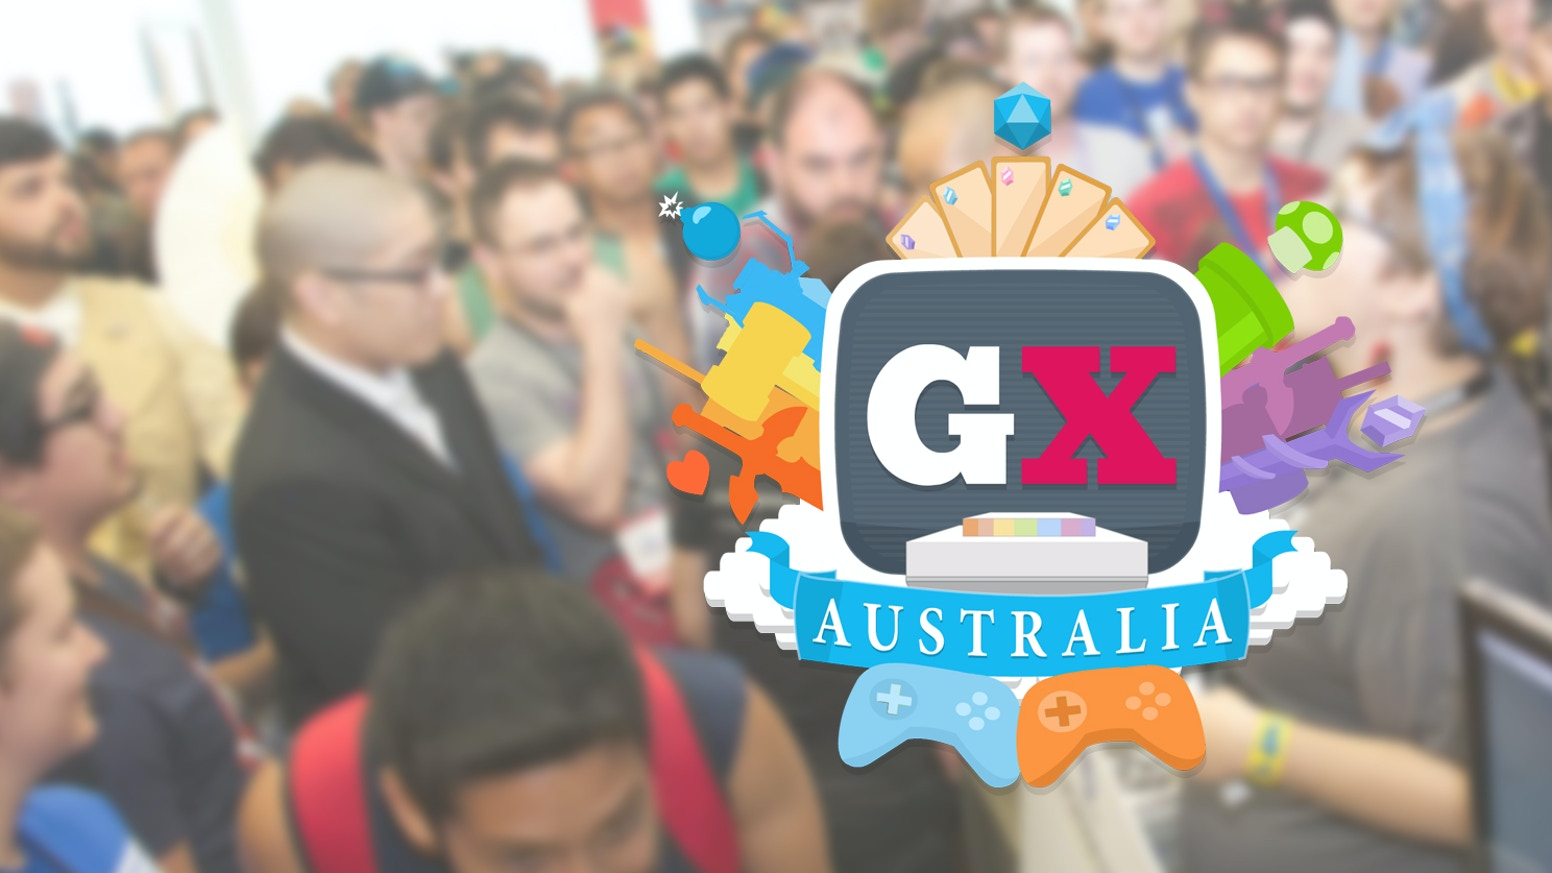 Tickets on sale now! http://bit.ly/1LCKApj — GX Australia is the country's first convention for queer gamers, geeks, and all of their friends. Coming to Sydney in 2016!